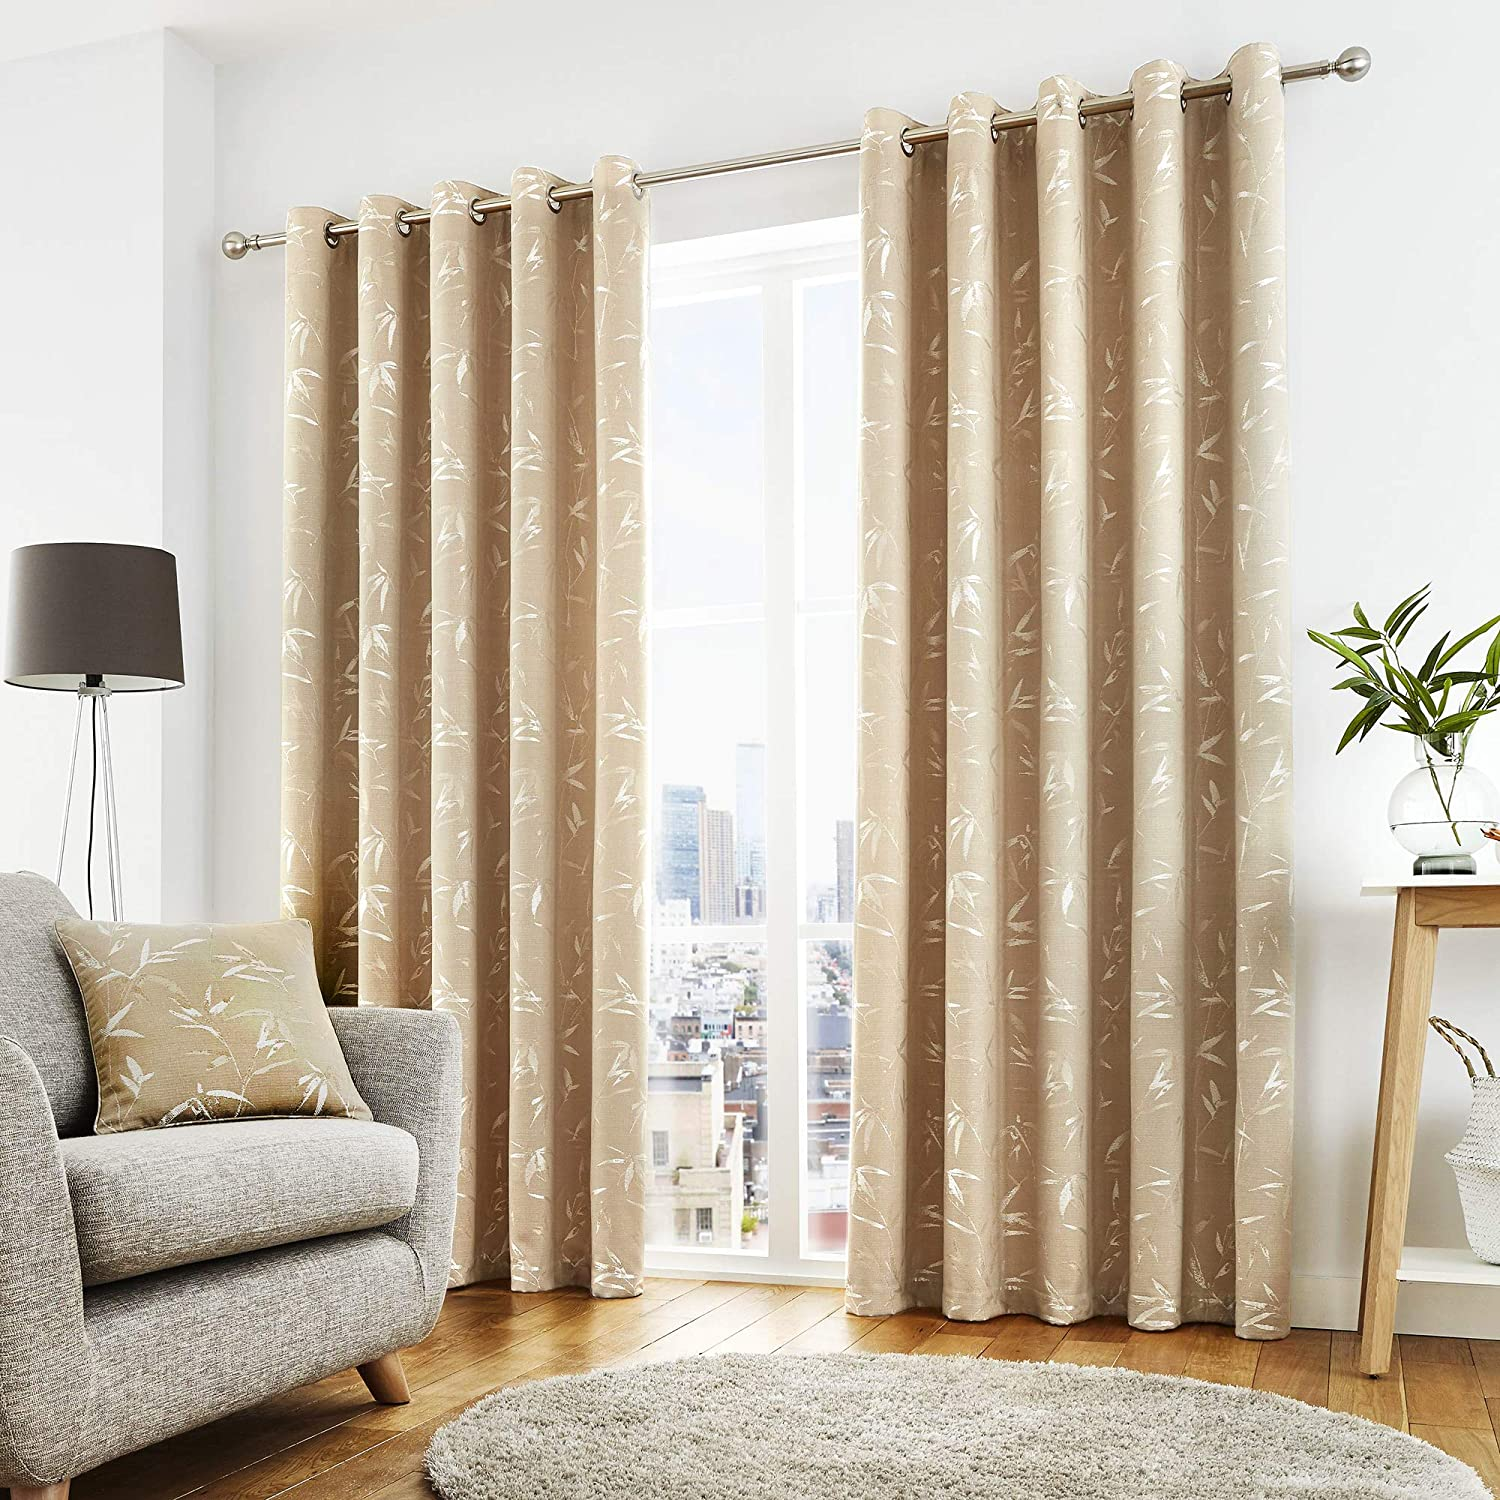 Curtina - Sagano - Ready Made Lined Eyelet Curtains - 46